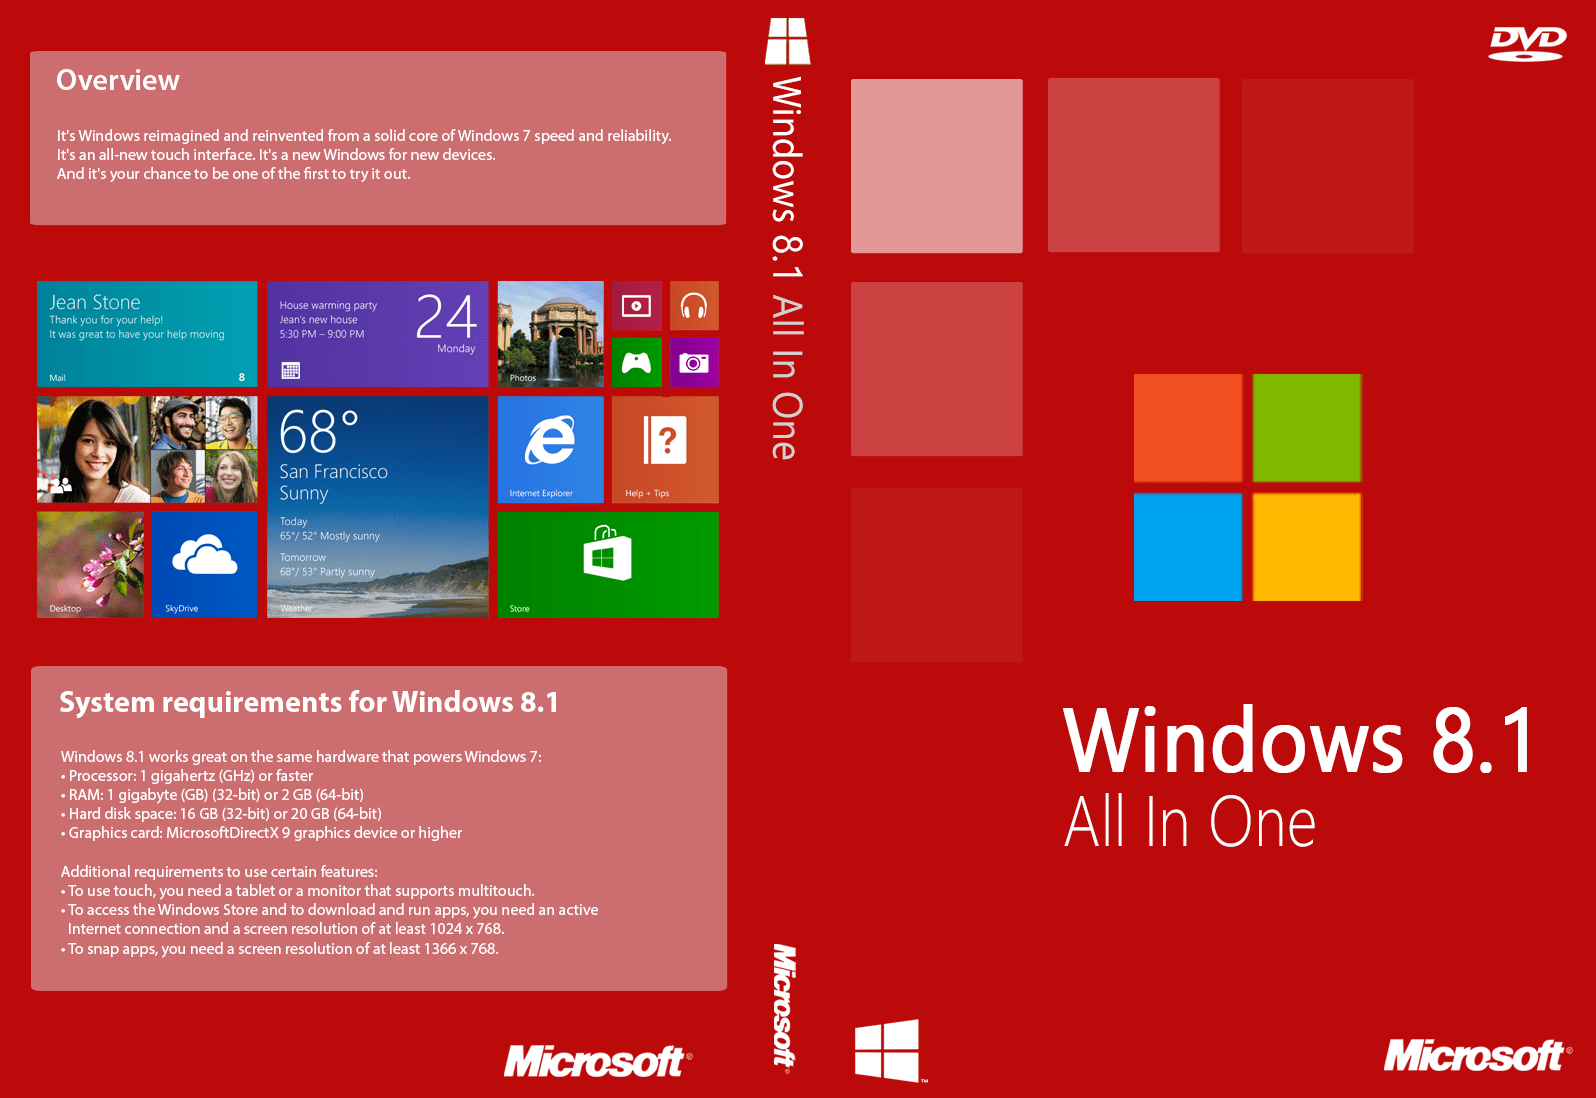 Download Gratis Windows 8.1 AIO Terbaru